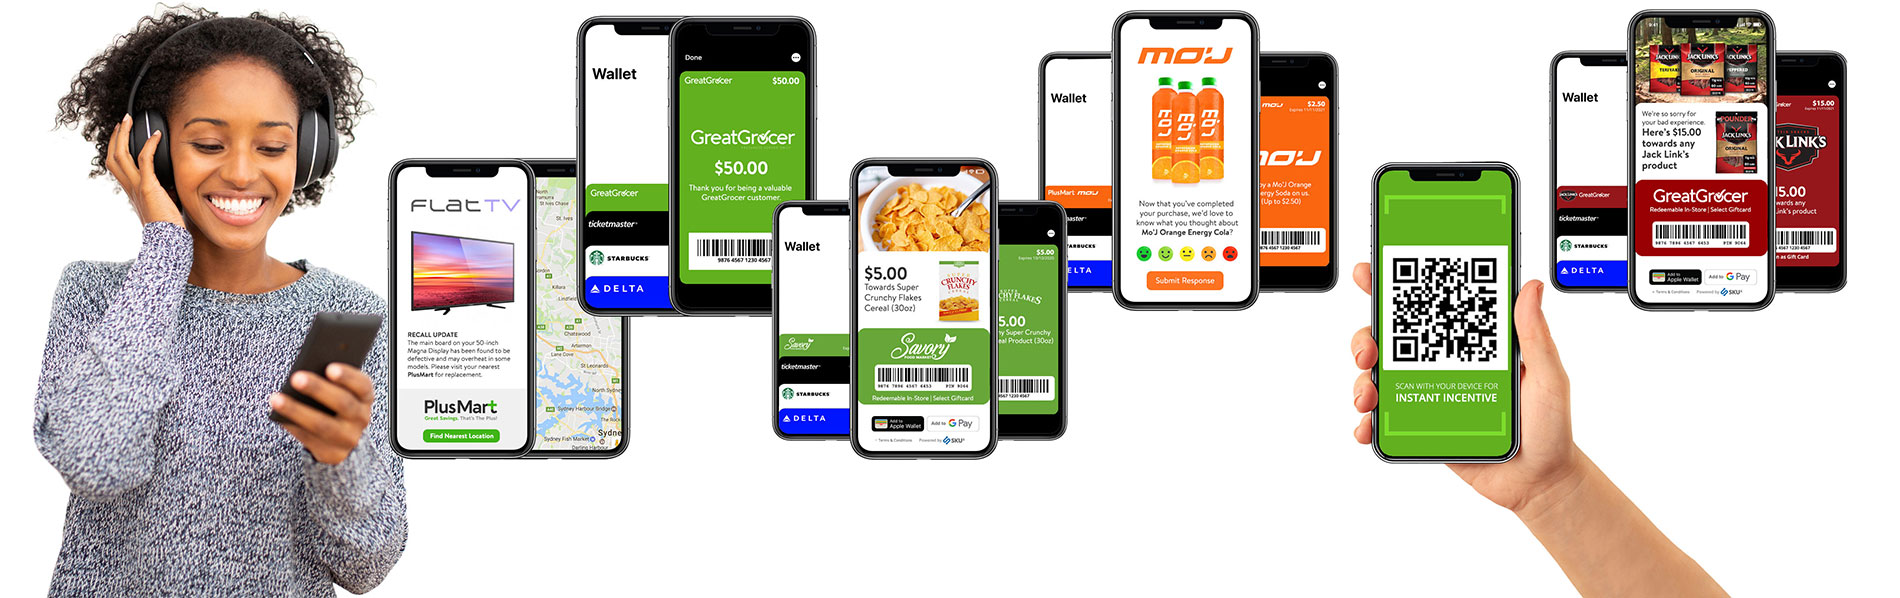 mobile incentive use case examples